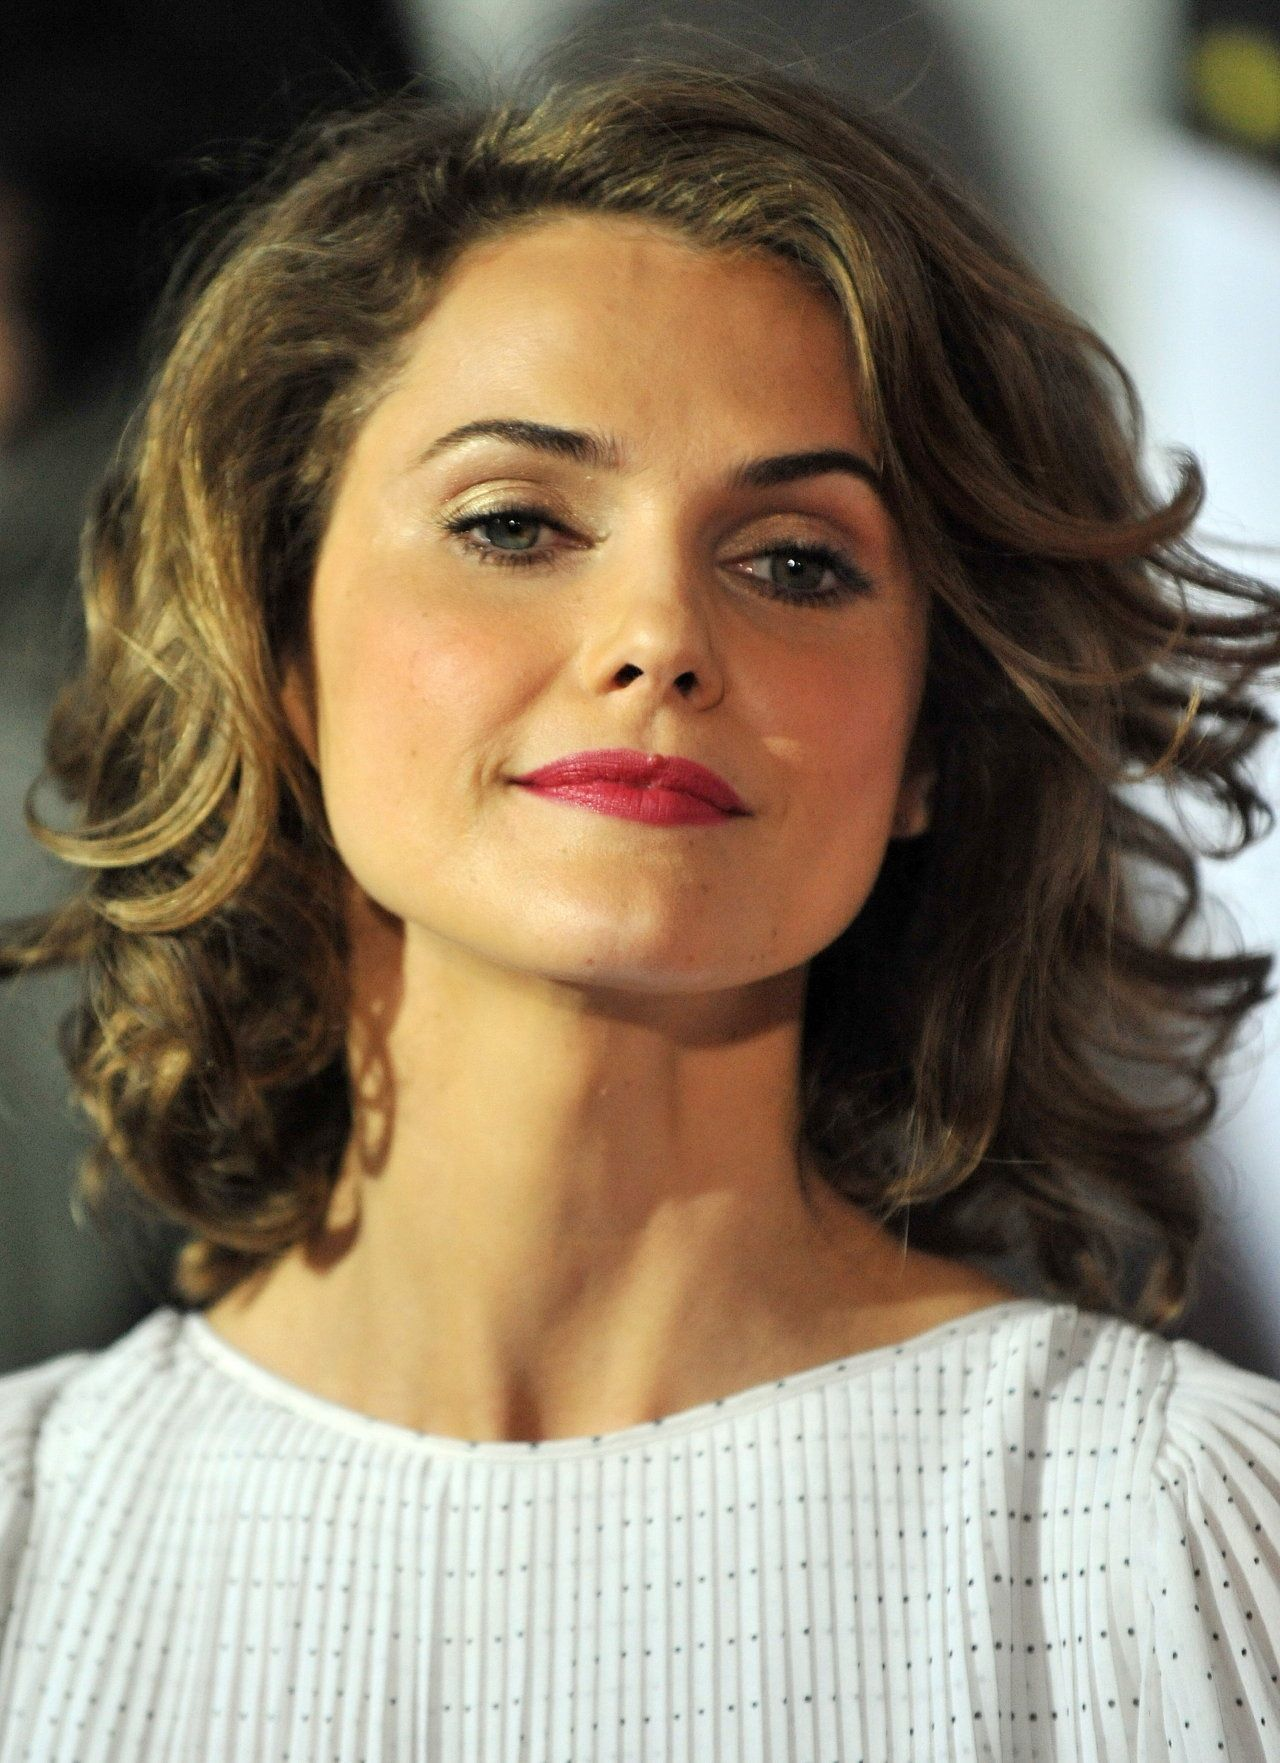 Fint Halvlang Frisyre5 Hairstyle Keri Russell Short Curly Bob